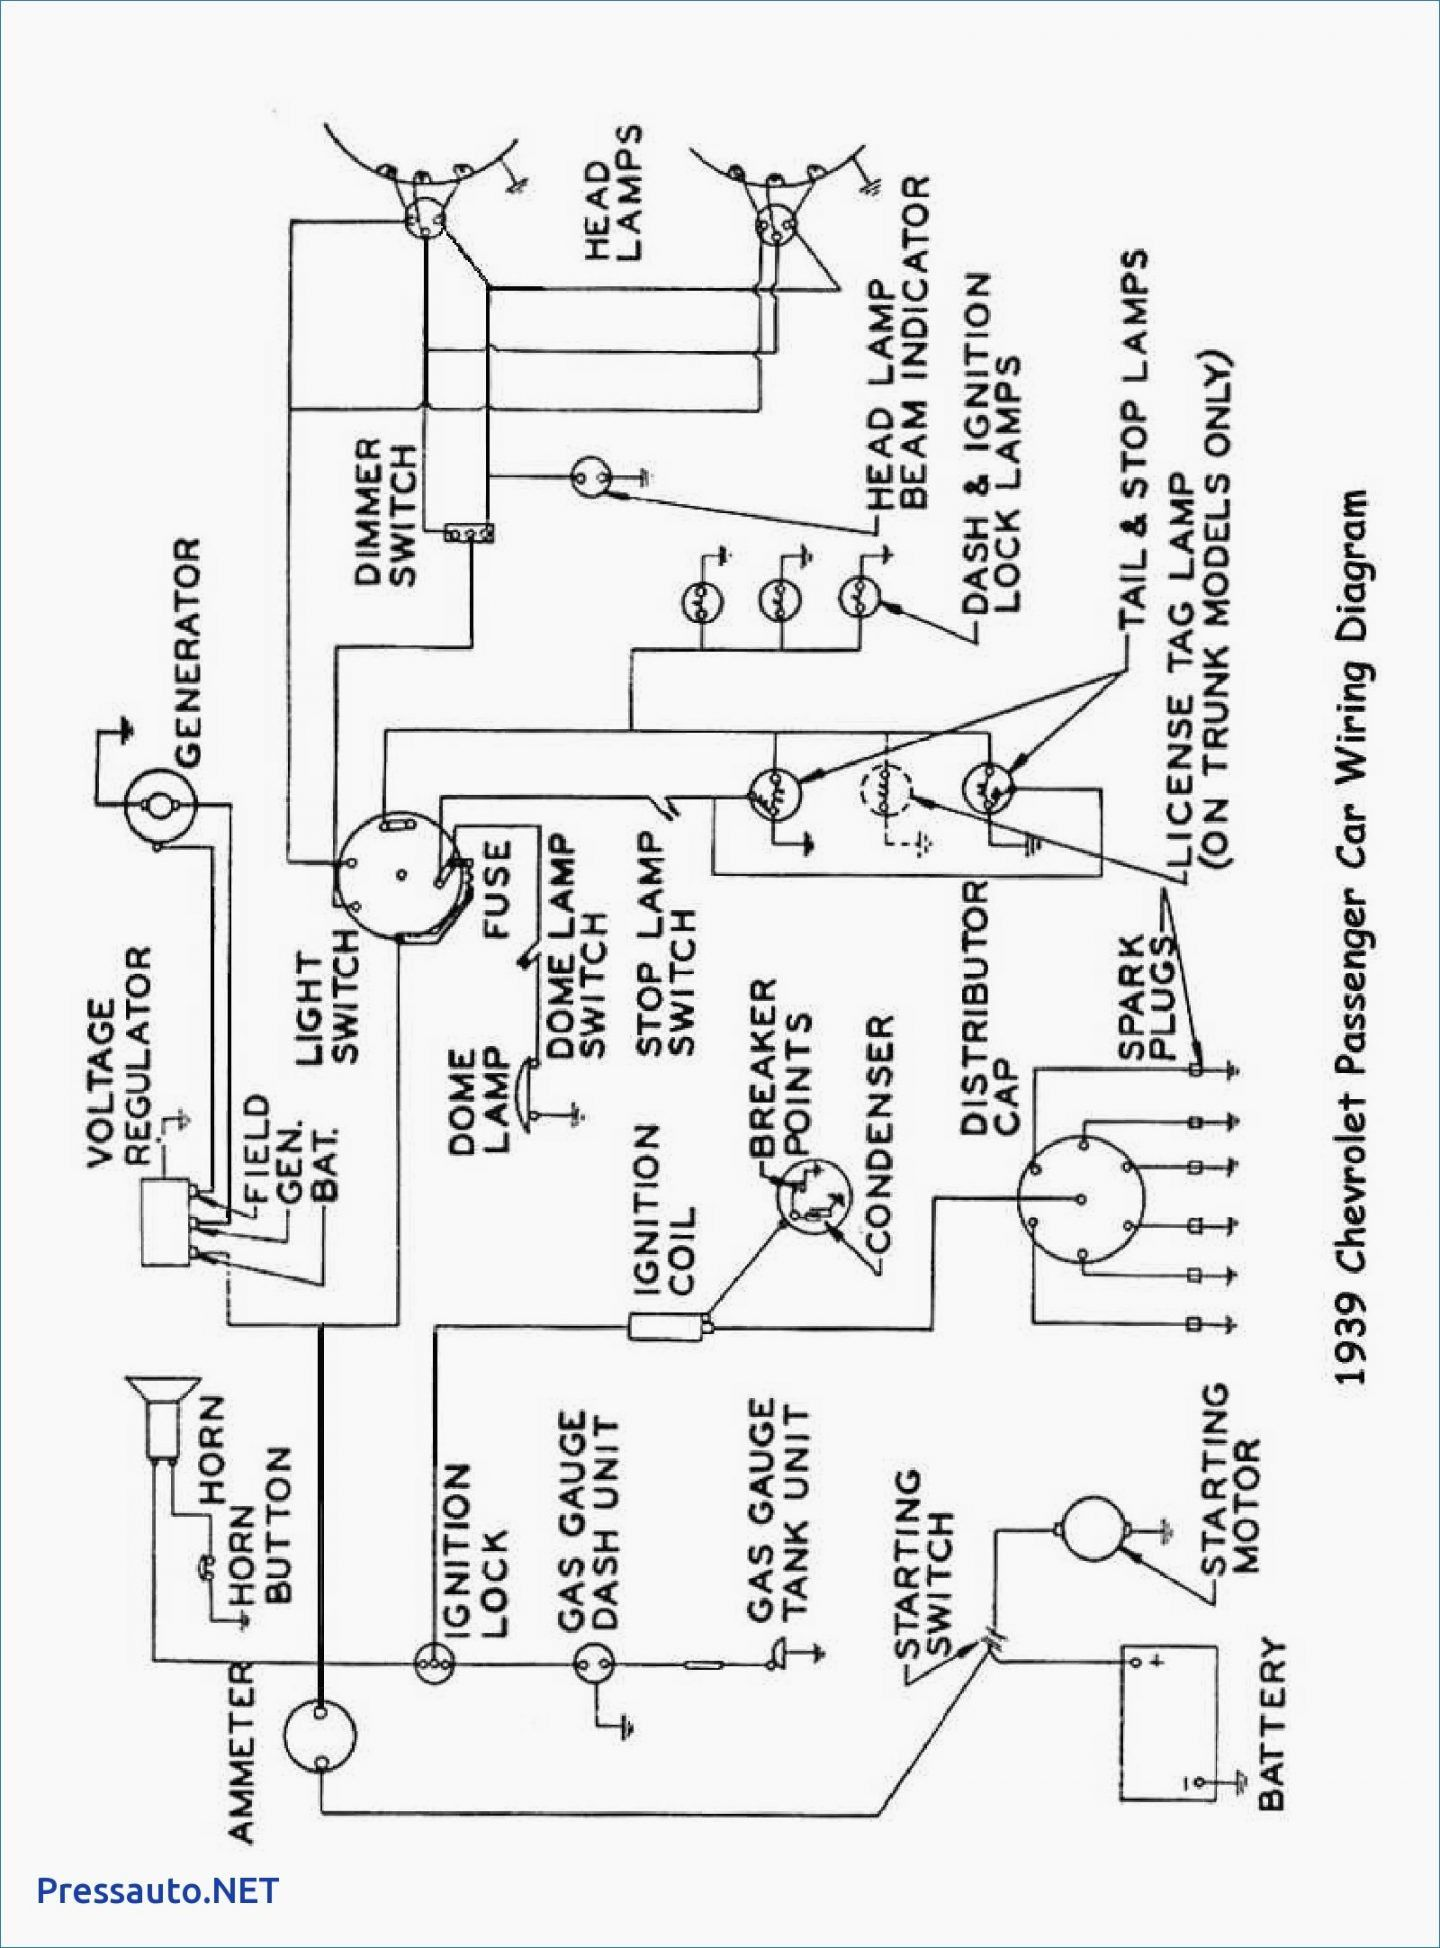 Wiring Diagram Welding Machine Inspirationa Best Of Pdf In